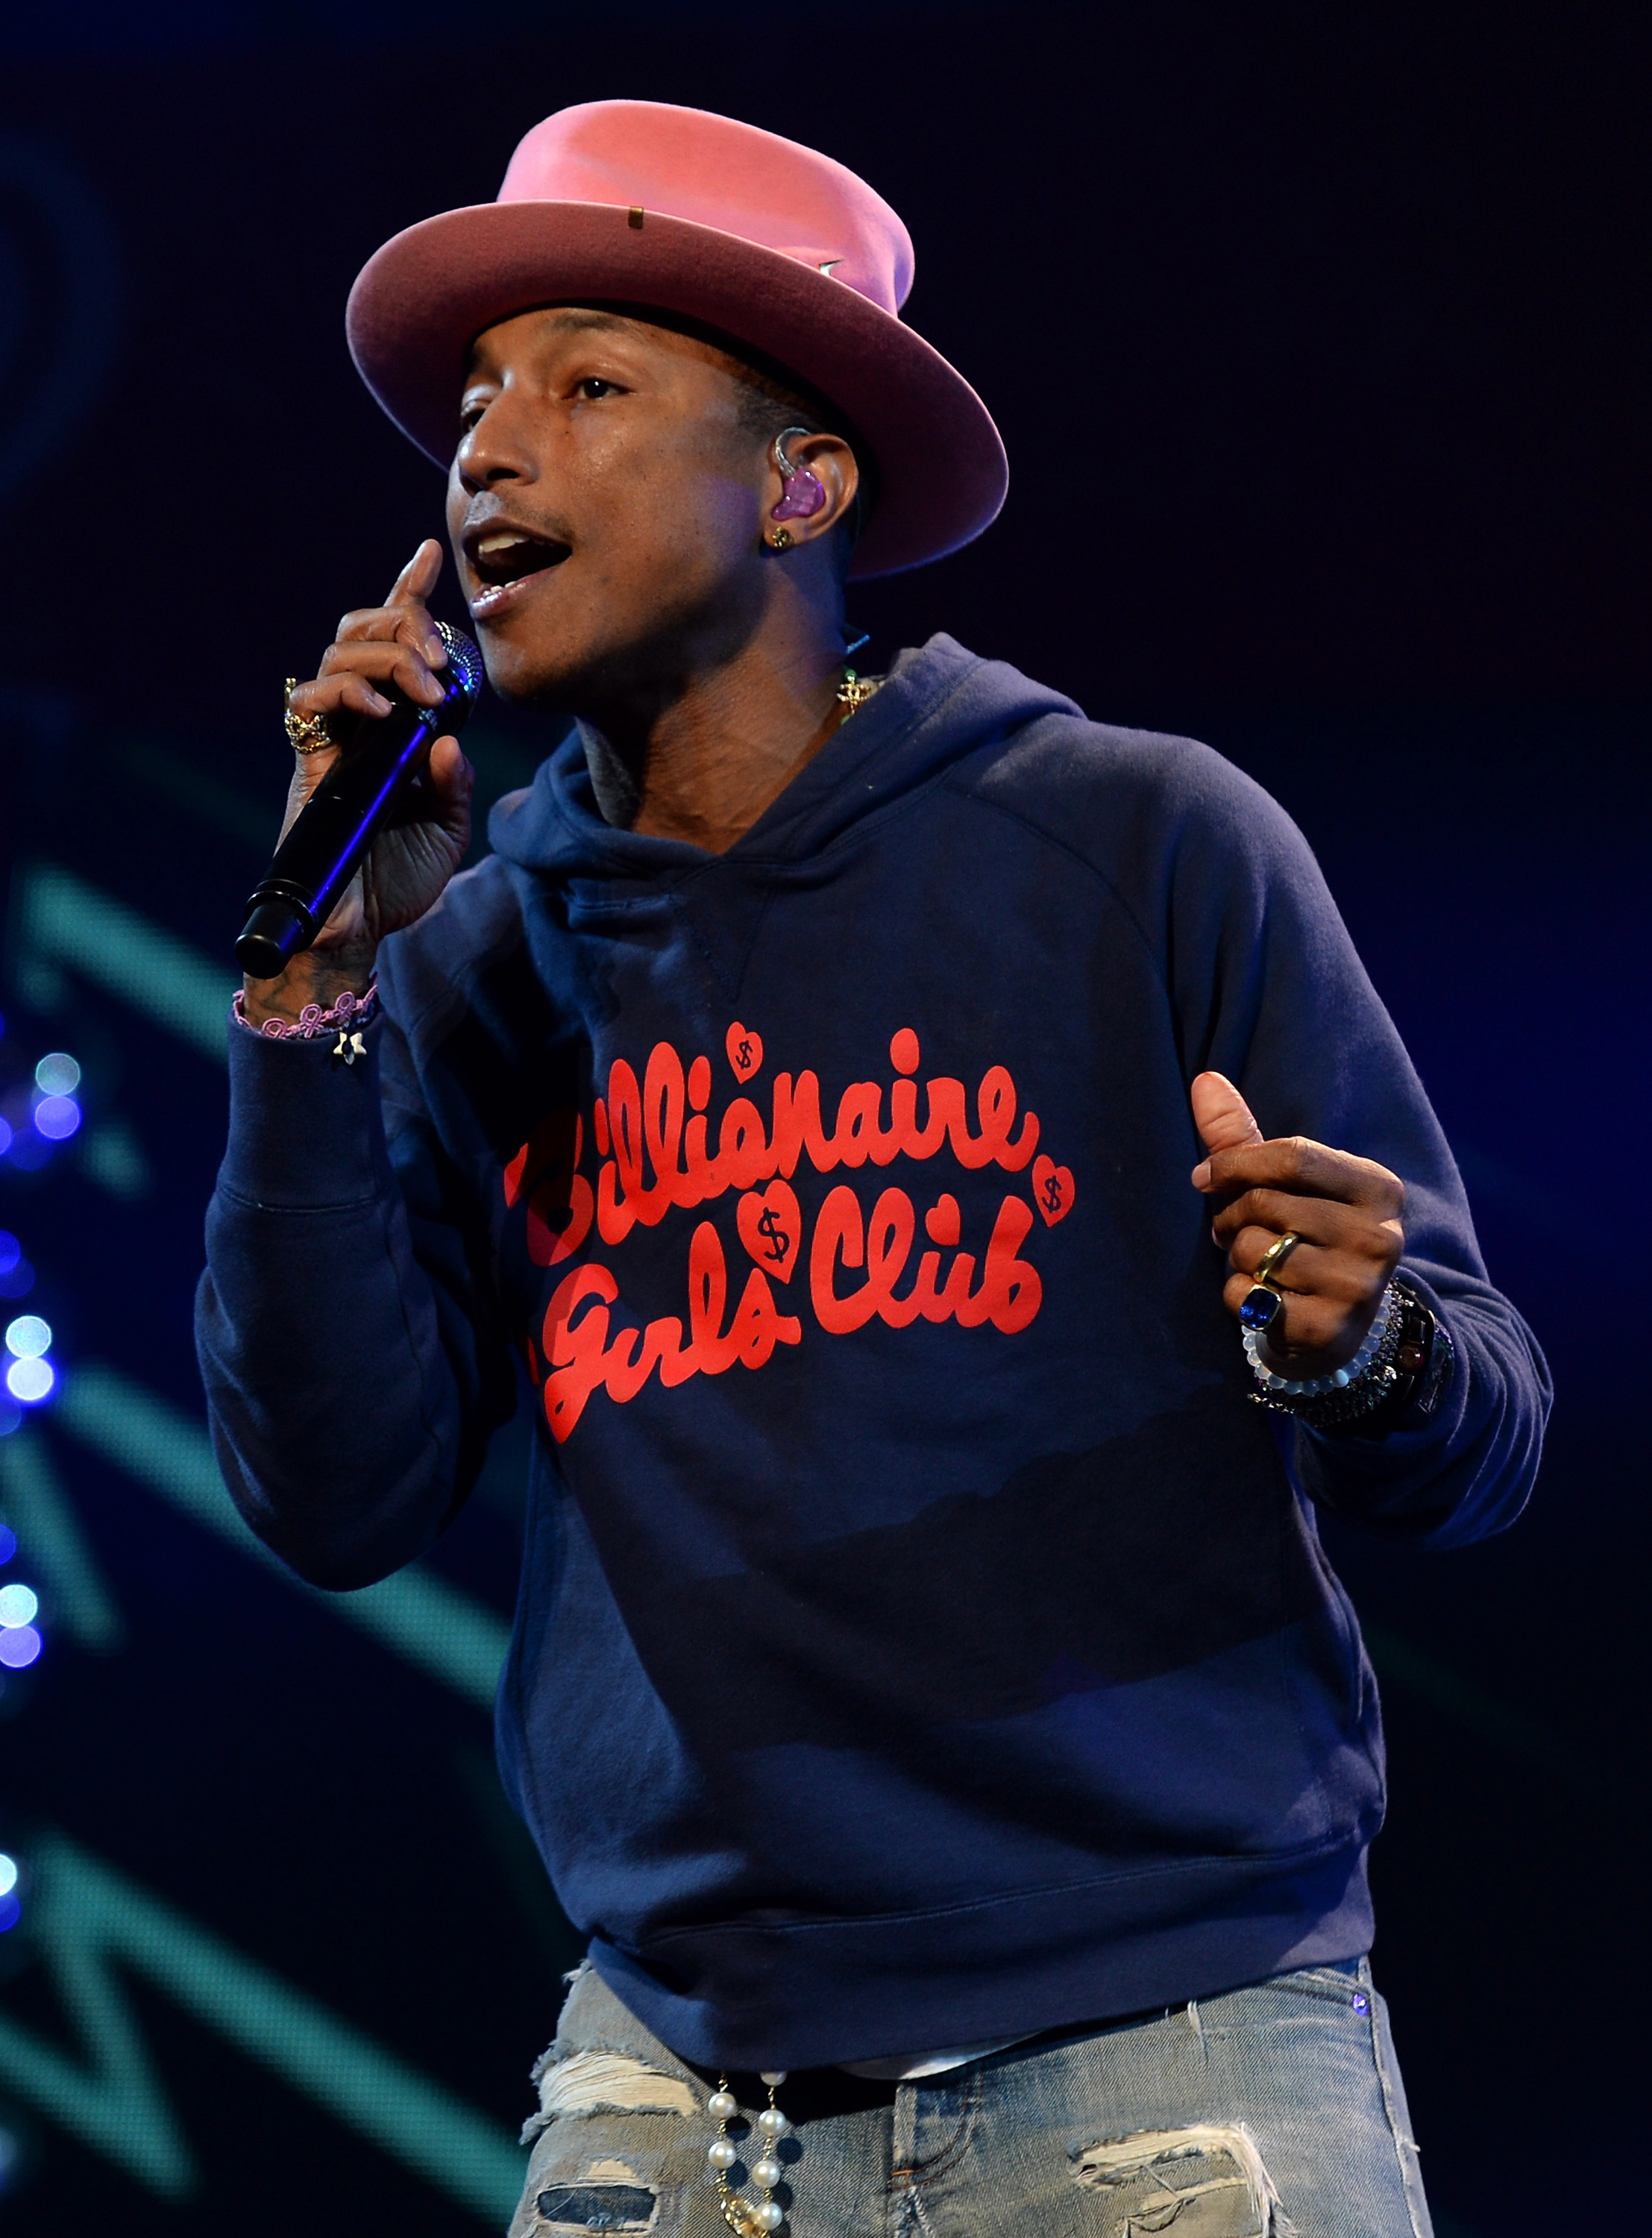 Pharrell Williams performs onstage during Y100's Jingle Ball 2014  on December 21, 2014 in Miami, FL.